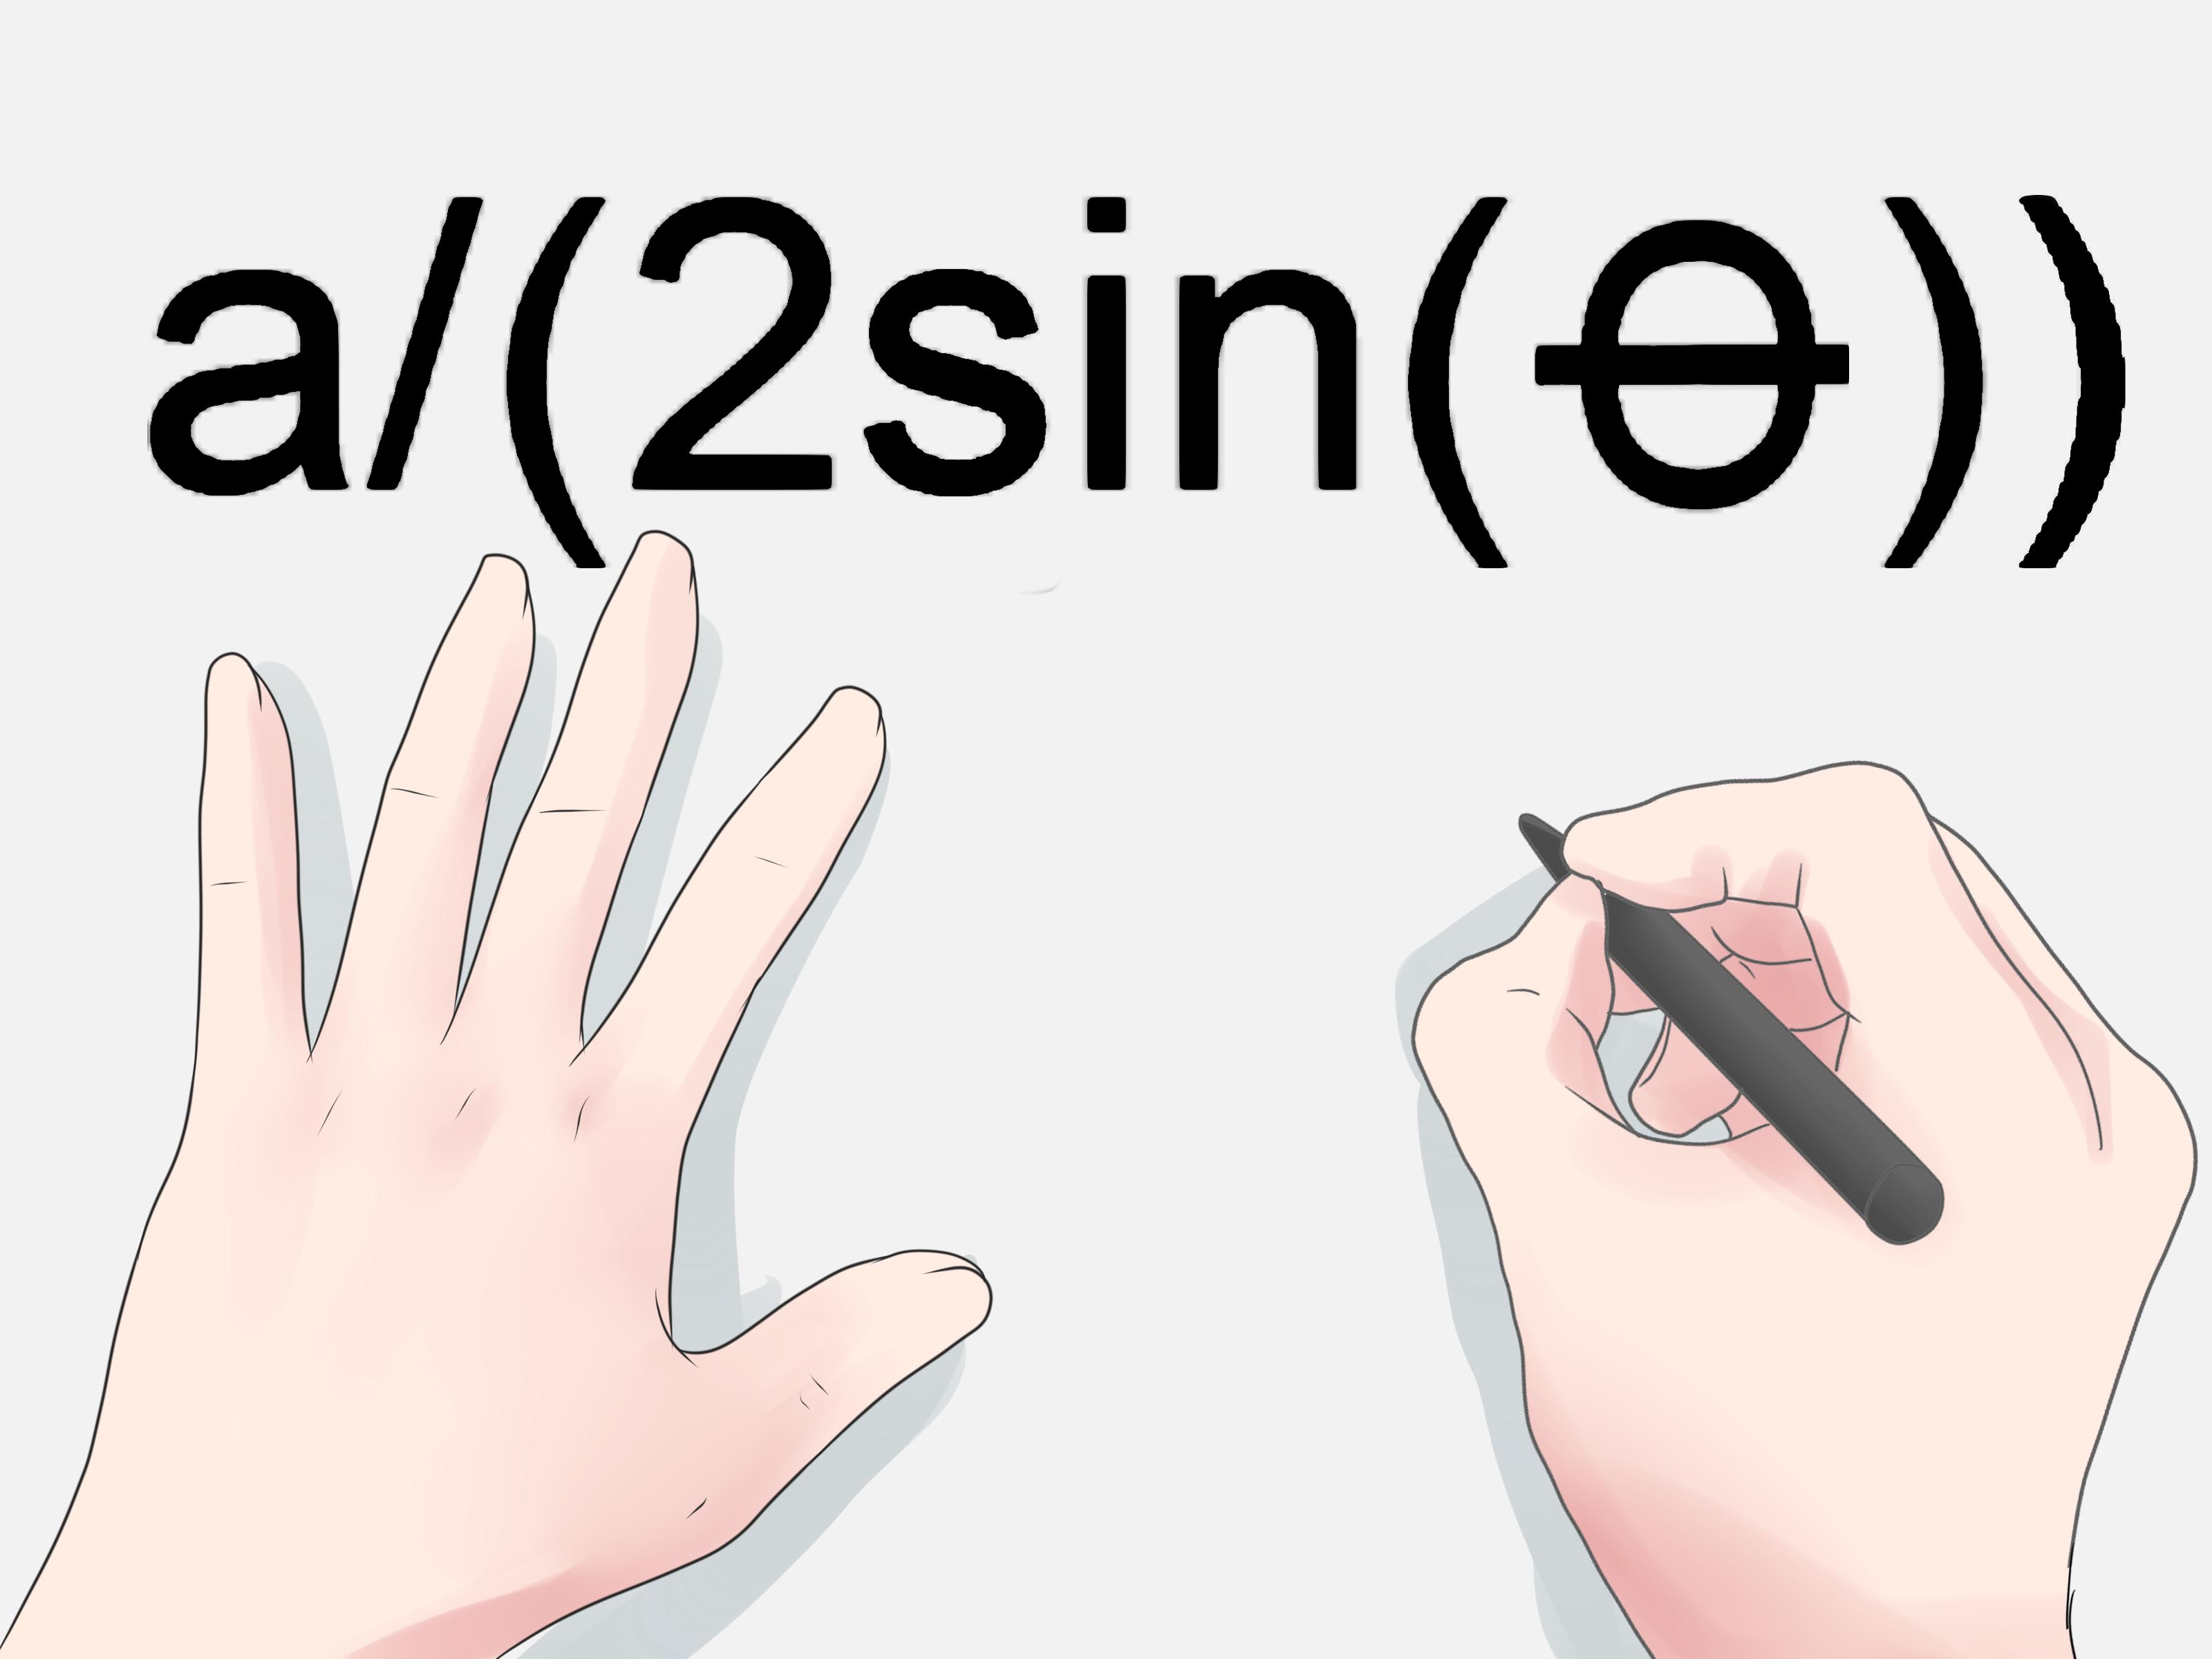 4 Ways To Calculate The Radius Of A Circle